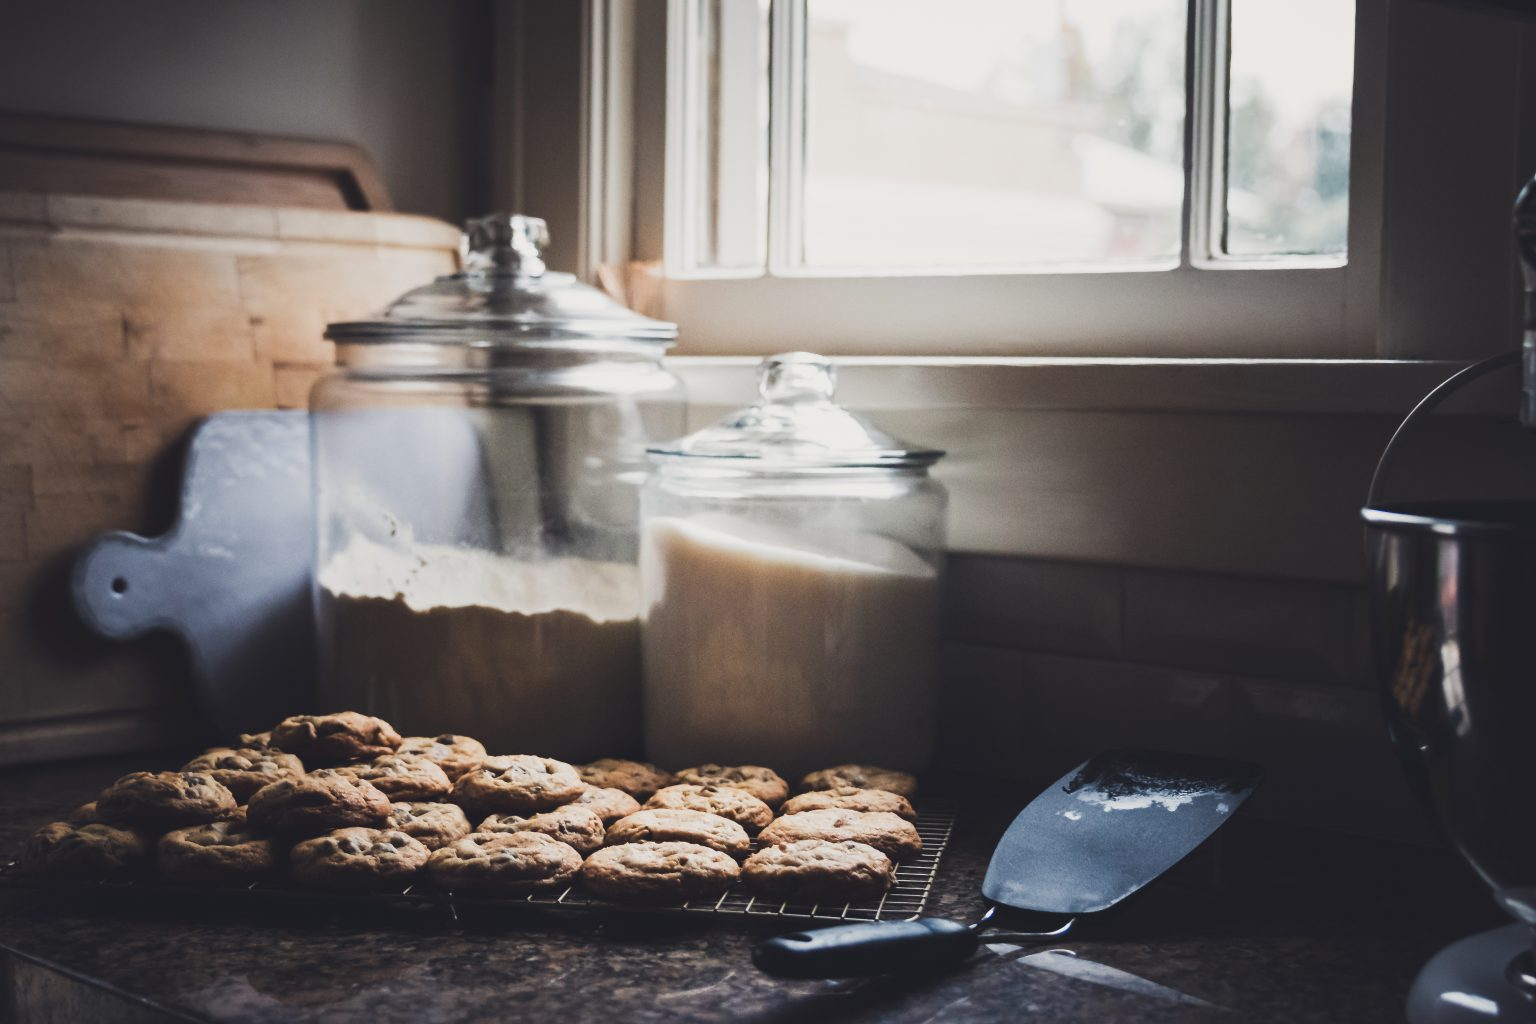 Freshly baked cookies, flour and sugar in kitchen